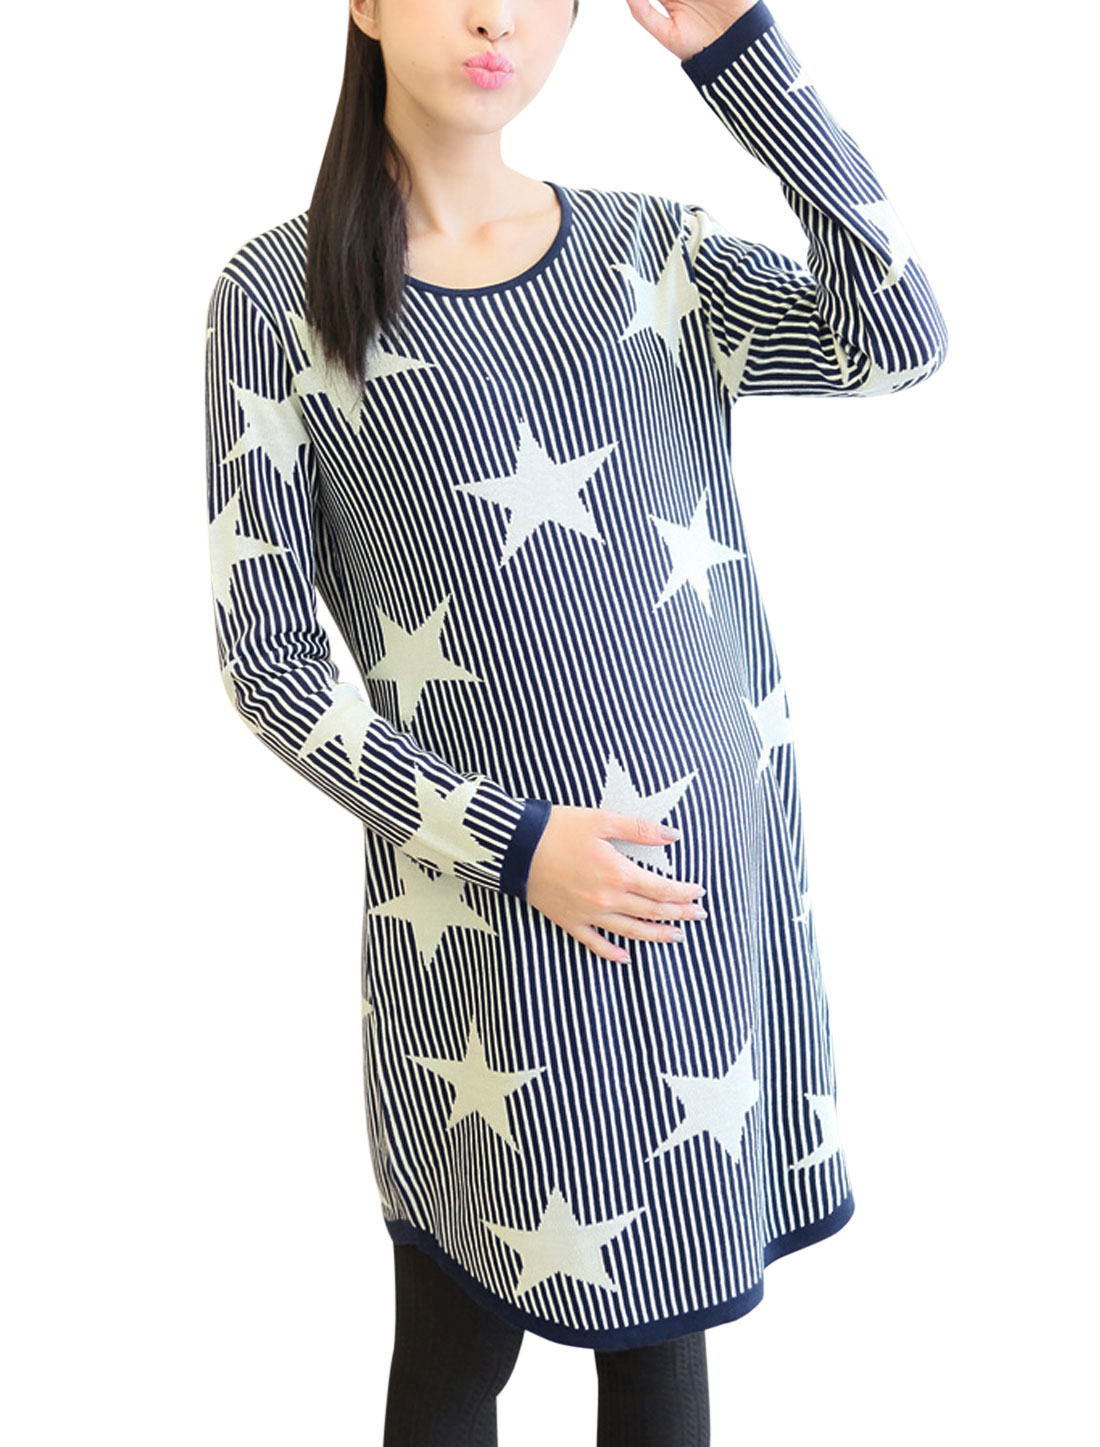 Maternity Ribbing Trim Stars Stripes Pattern Stretchy Tunic Sweater Navy Blue L